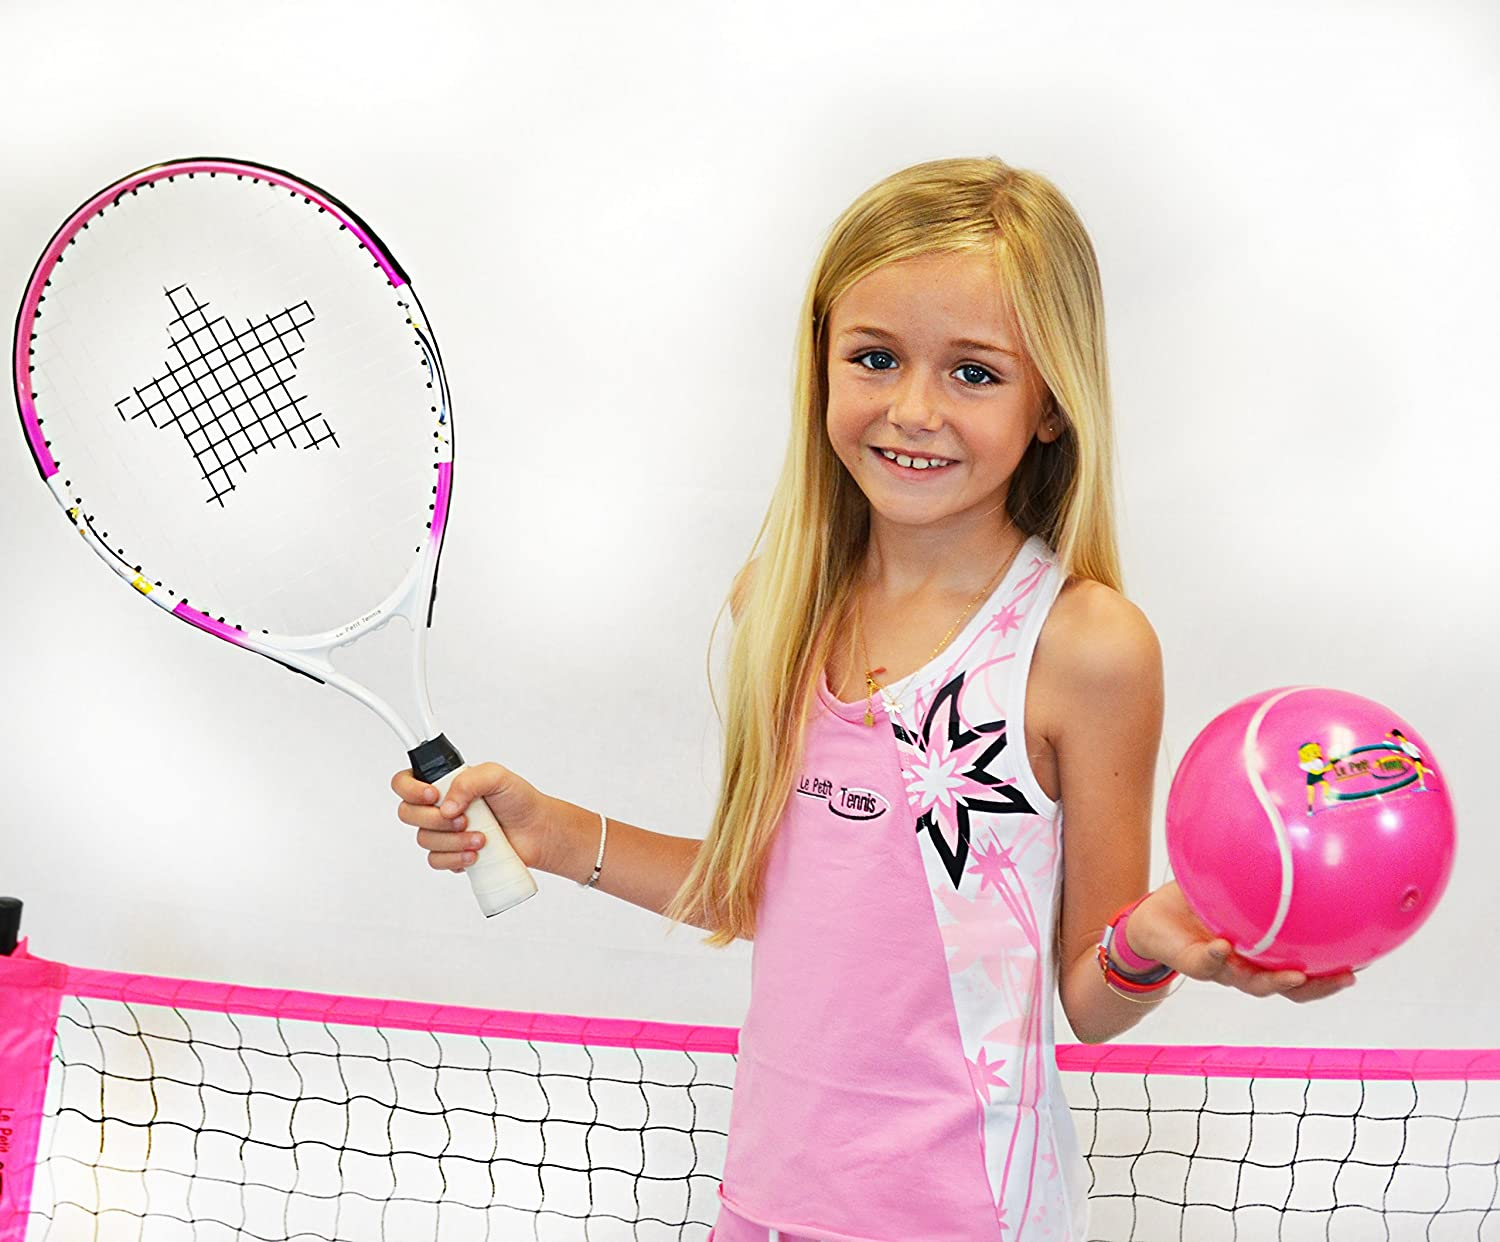 6 Inflatable Tennis Ball Pump My First Tennis Ball Le Petit Tennis Pack of 2 Balls for Ages 2-3-4-5-6